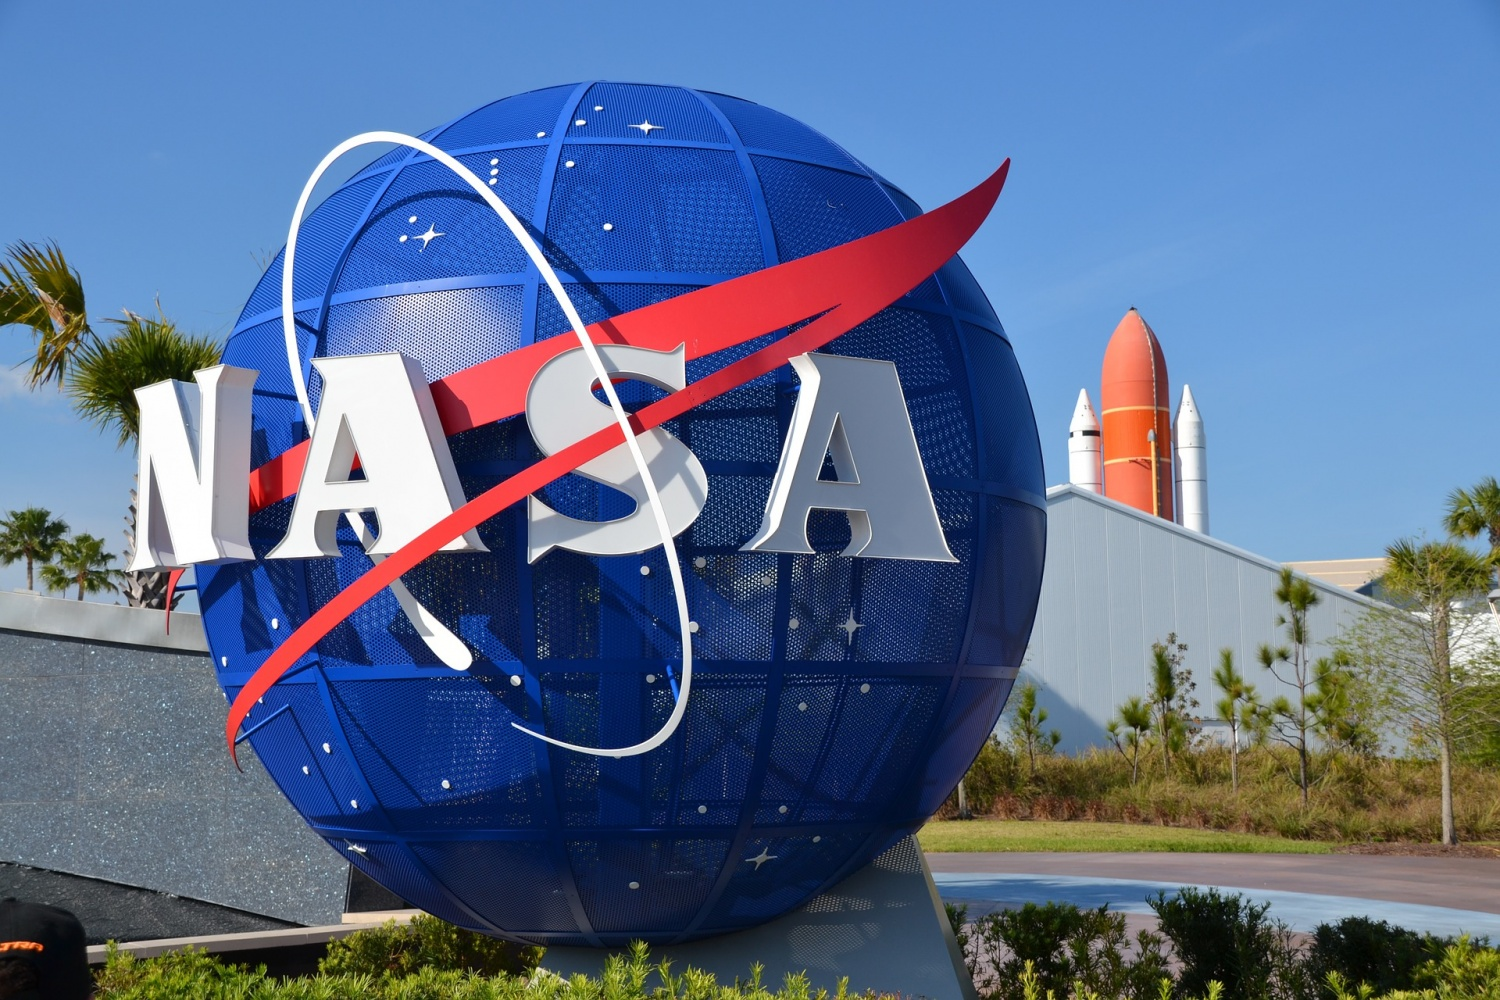 NASA and United Space Force